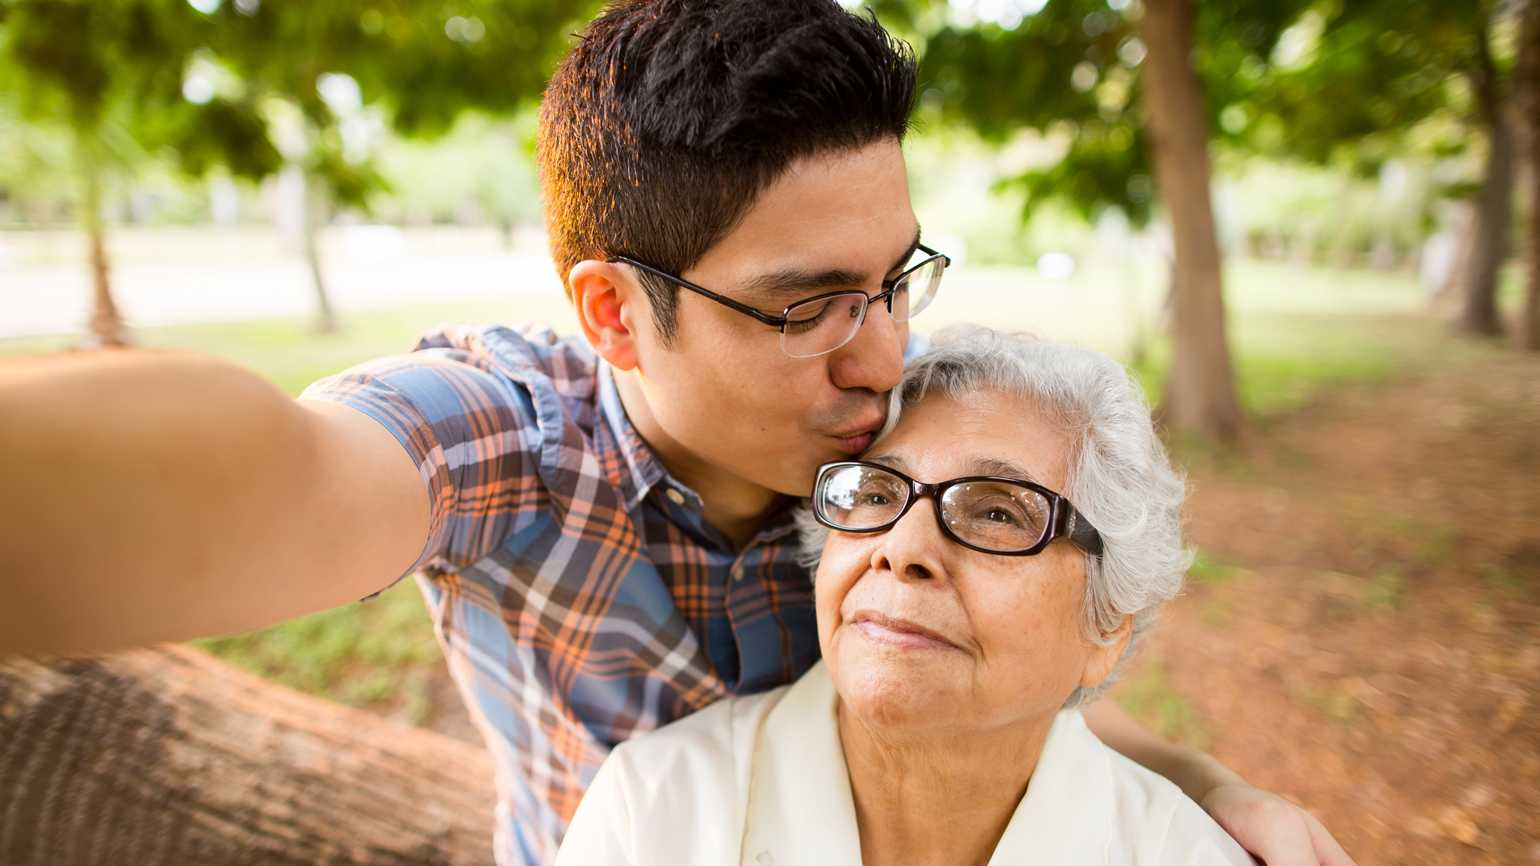 A millennial grandson showing affection to his grandmother.